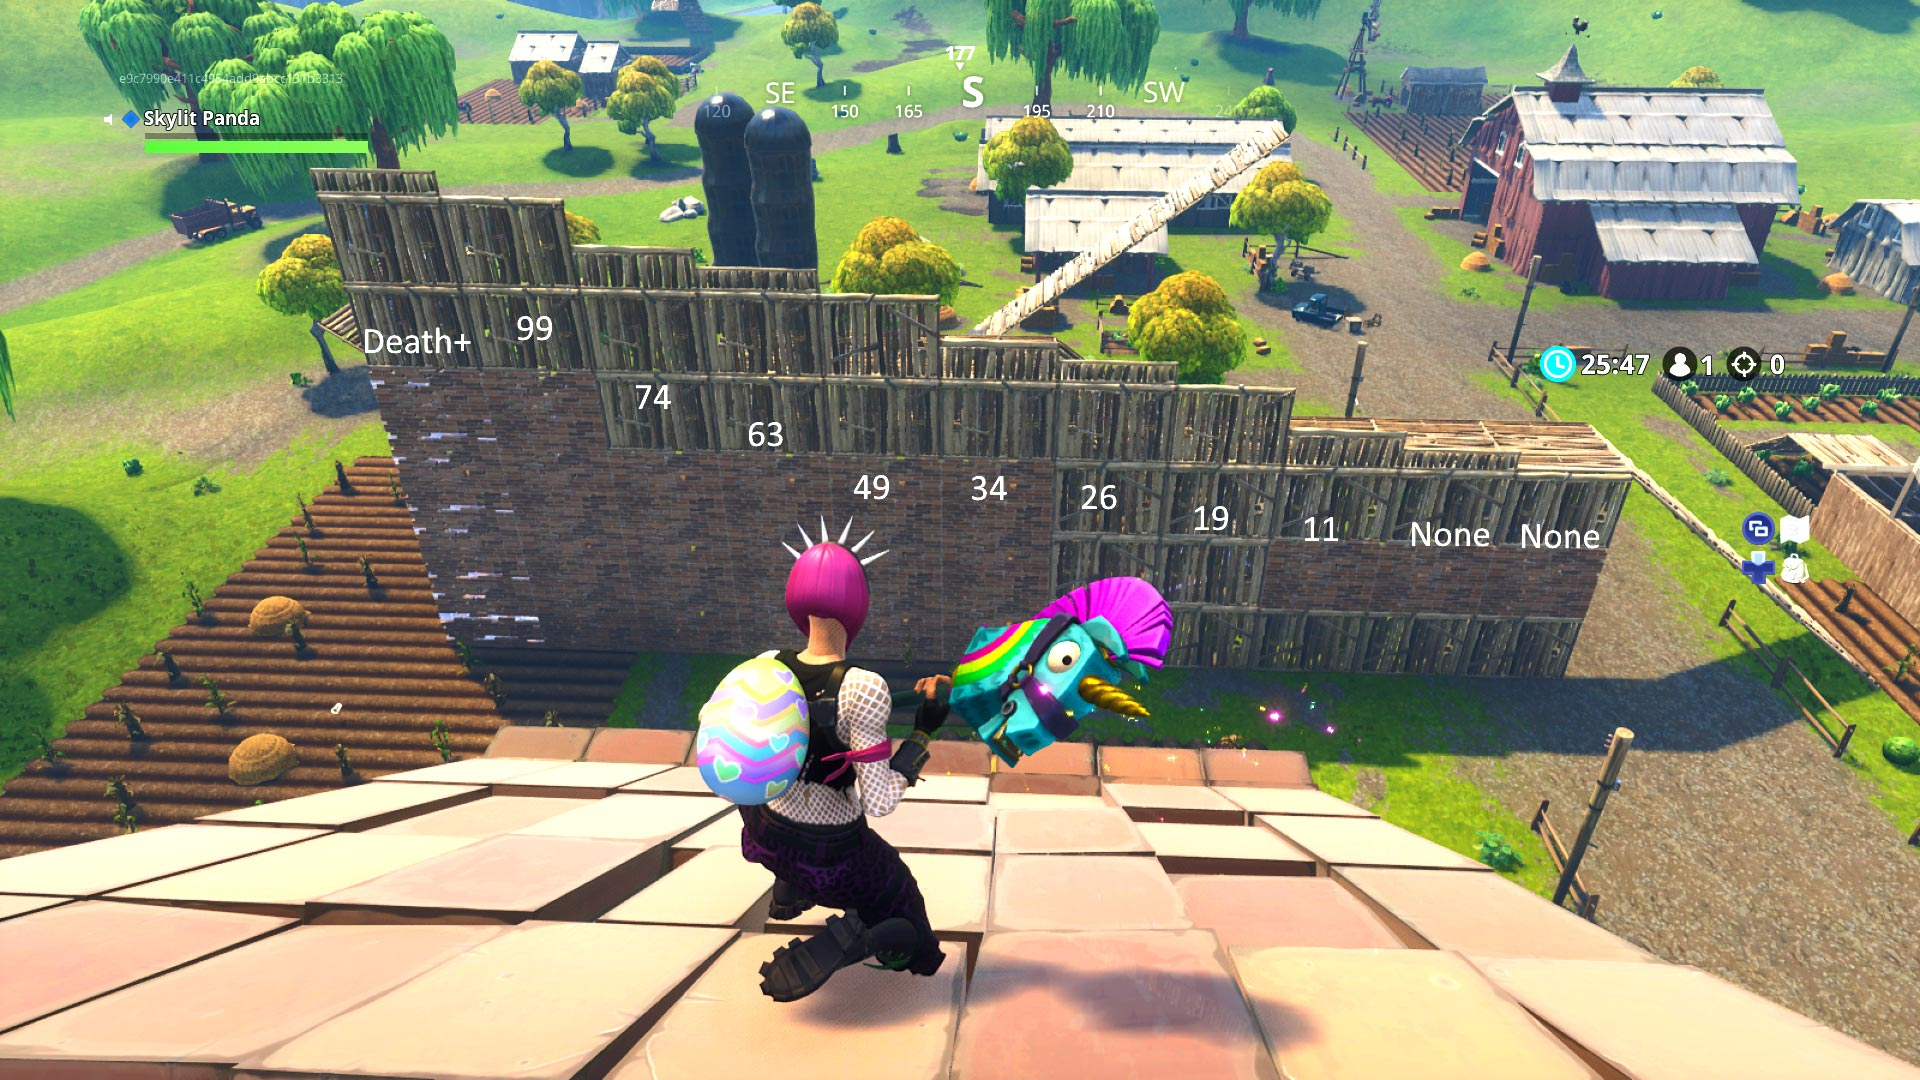 Fortnite Falling down height damage table